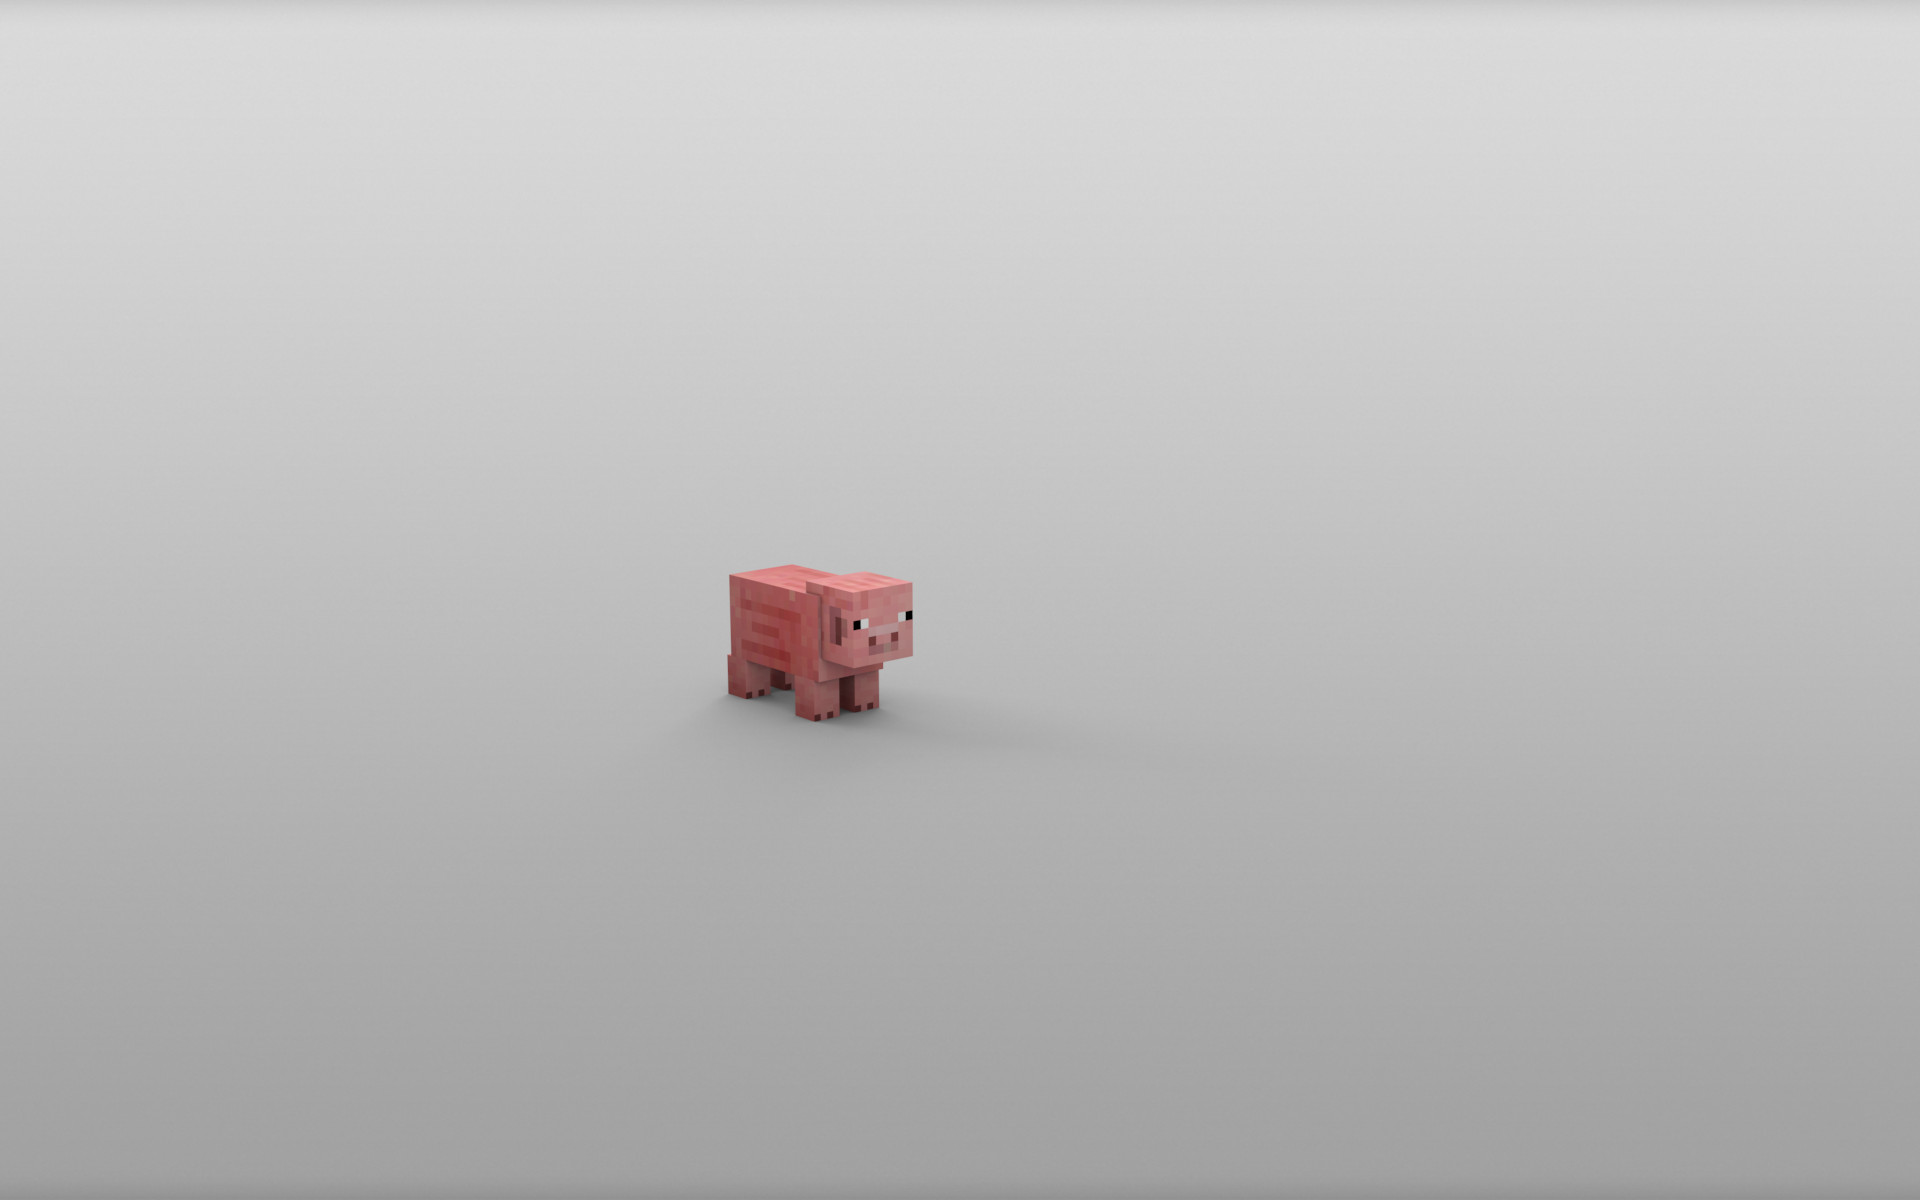 Great Wallpaper Minecraft Red - minecraft-pig-wallpaper-24427-25091-hd-wallpapers  Perfect Image Reference_305429.jpg